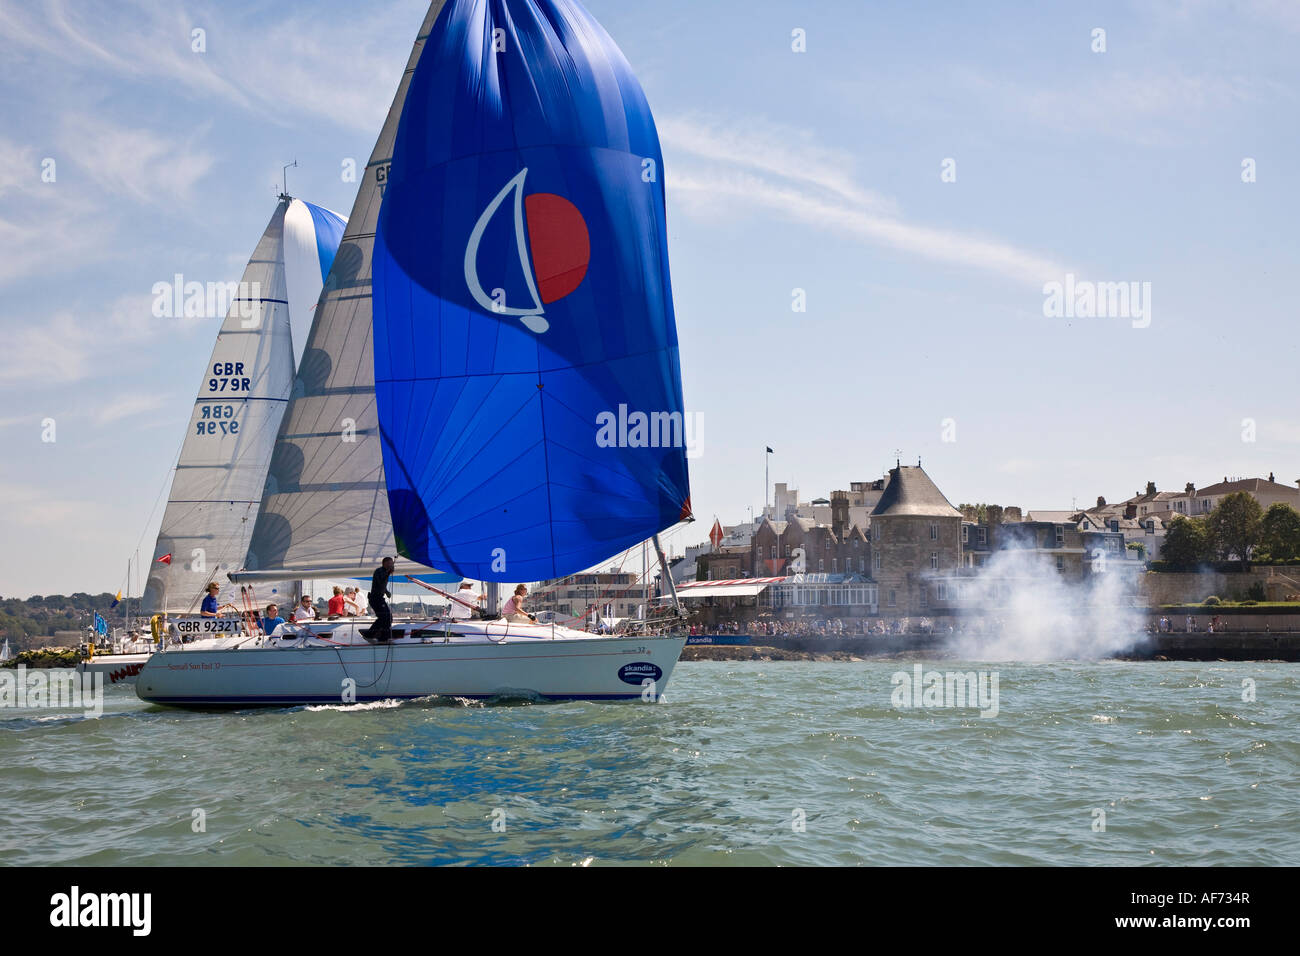 Spinnaker sails flown on yachts finishing race during Cowes week racing Isle of Wight Solent Hampshire England August - Stock Image